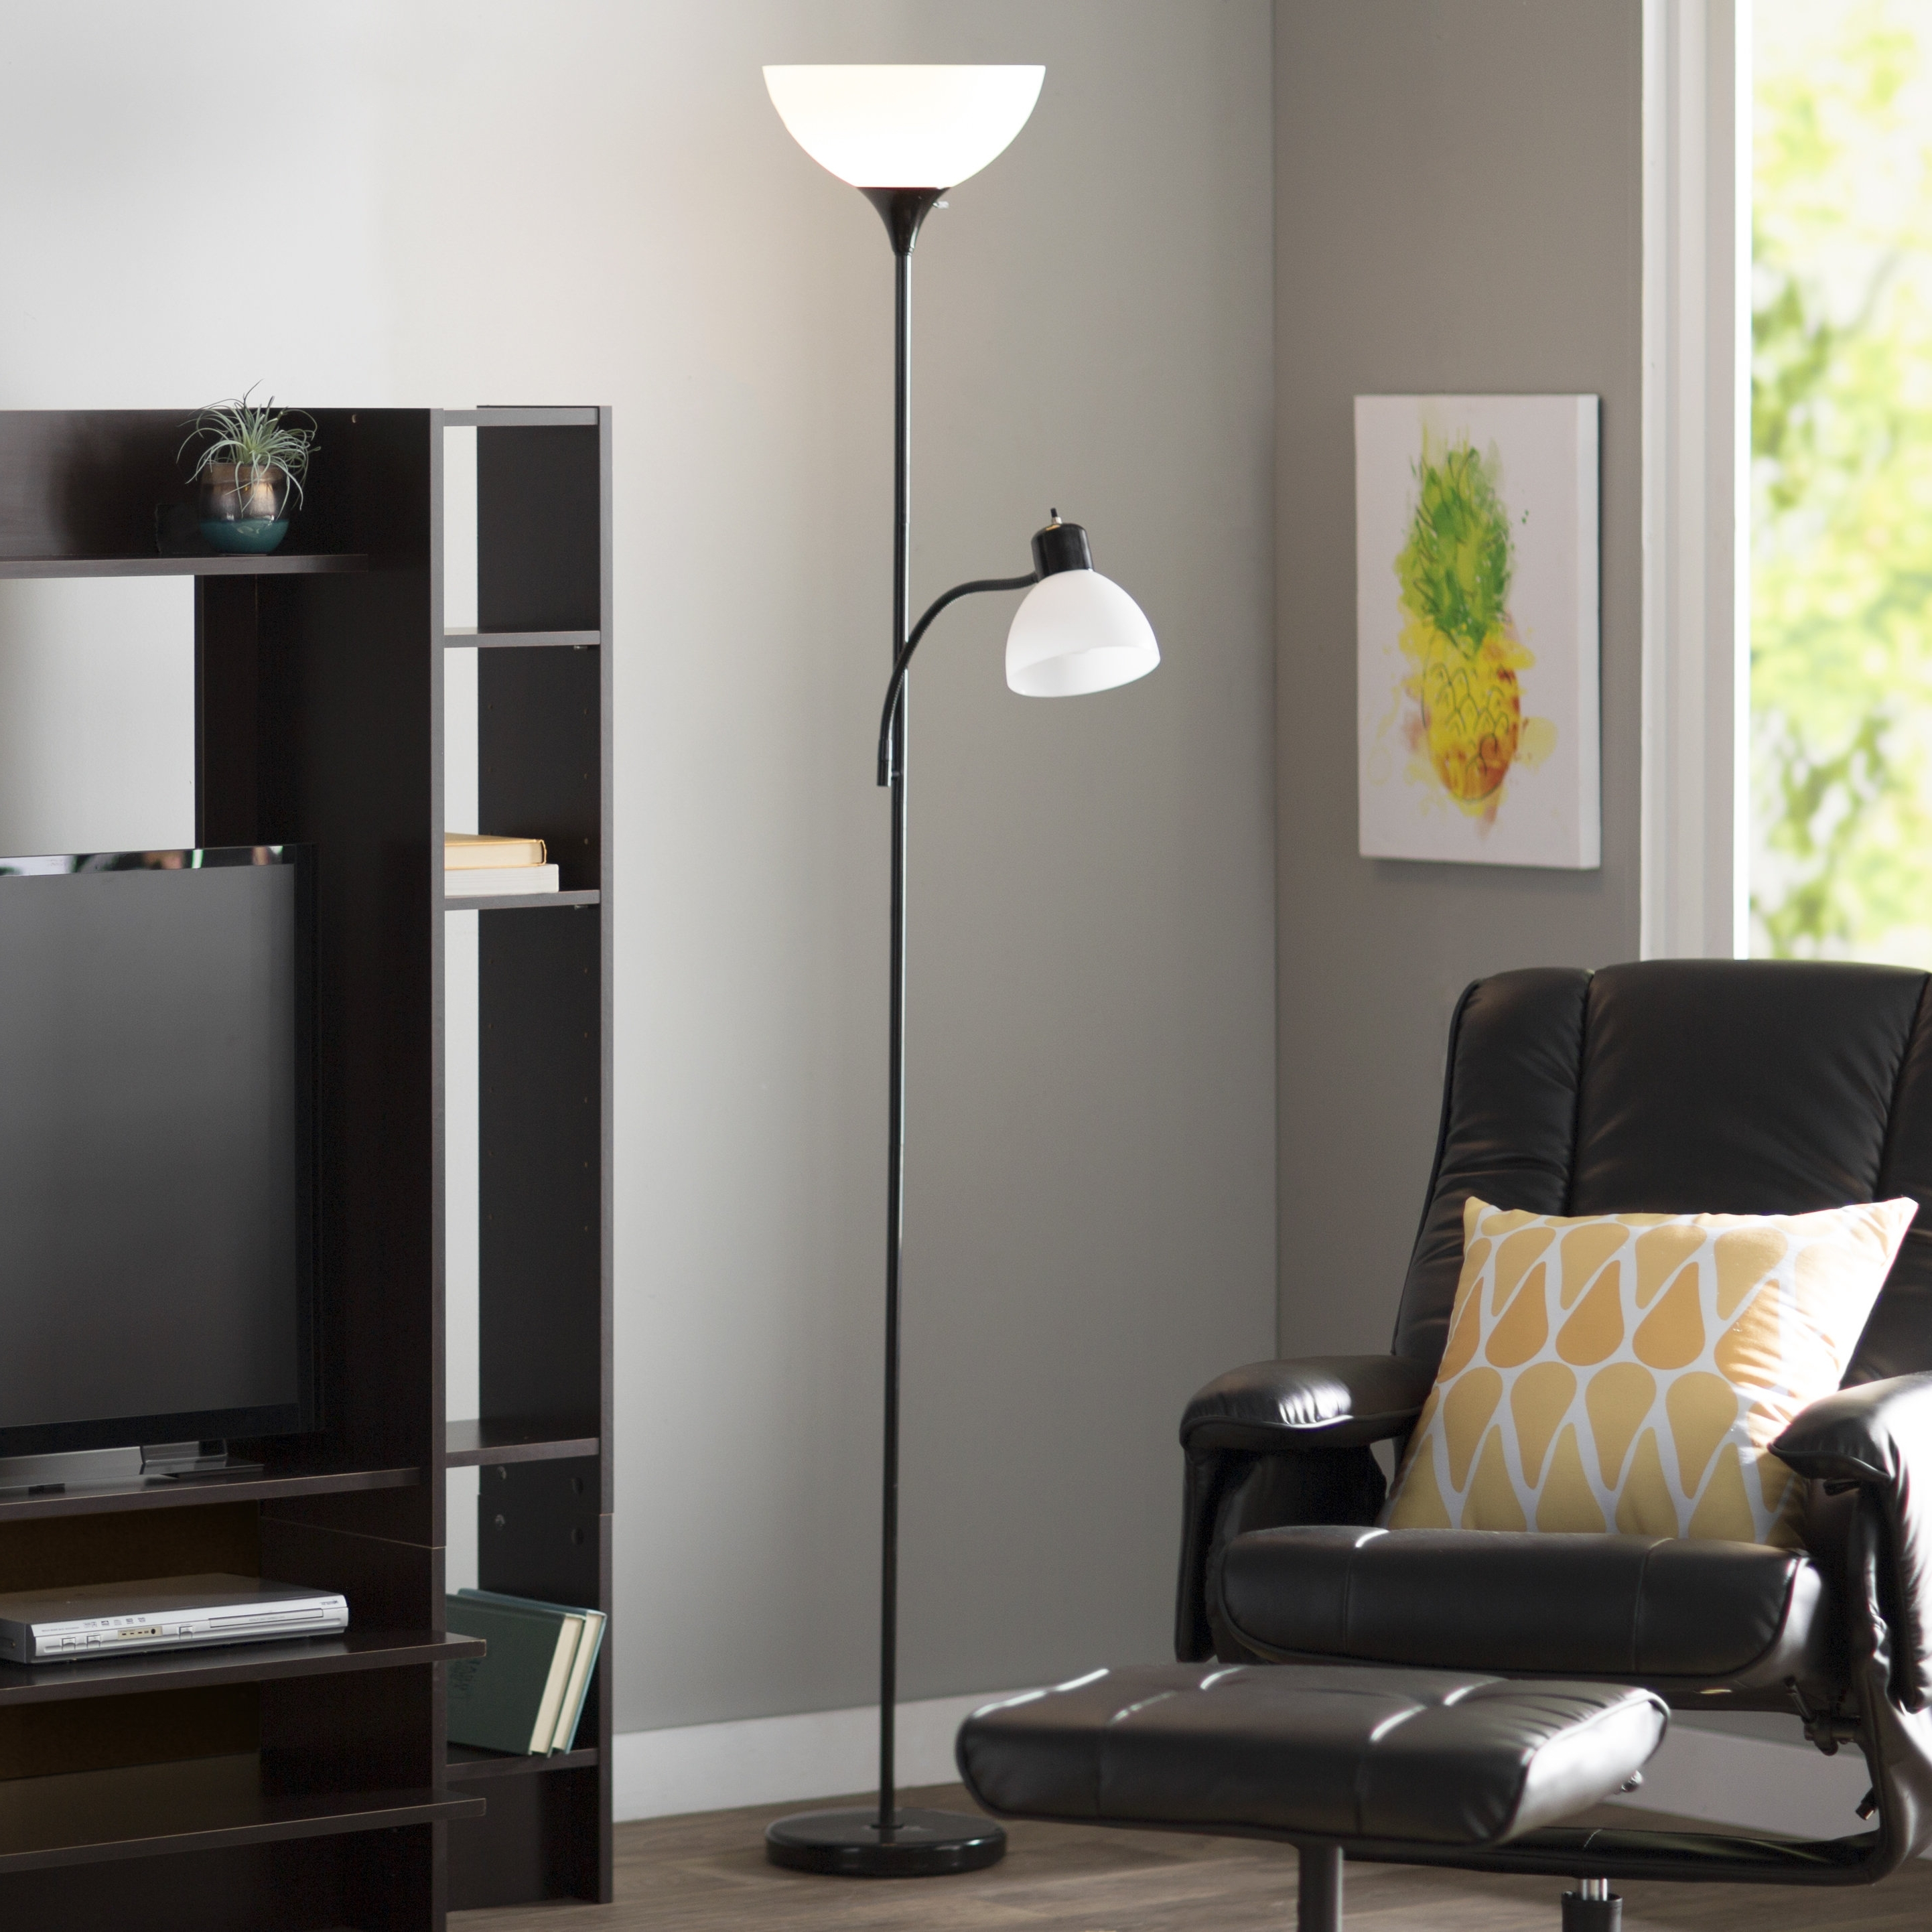 Most Recent White Living Room Table Lamps Regarding Lowes Floor Lamps Wayfair Floor Lamps Floor Lamps At Home Depot (View 8 of 20)